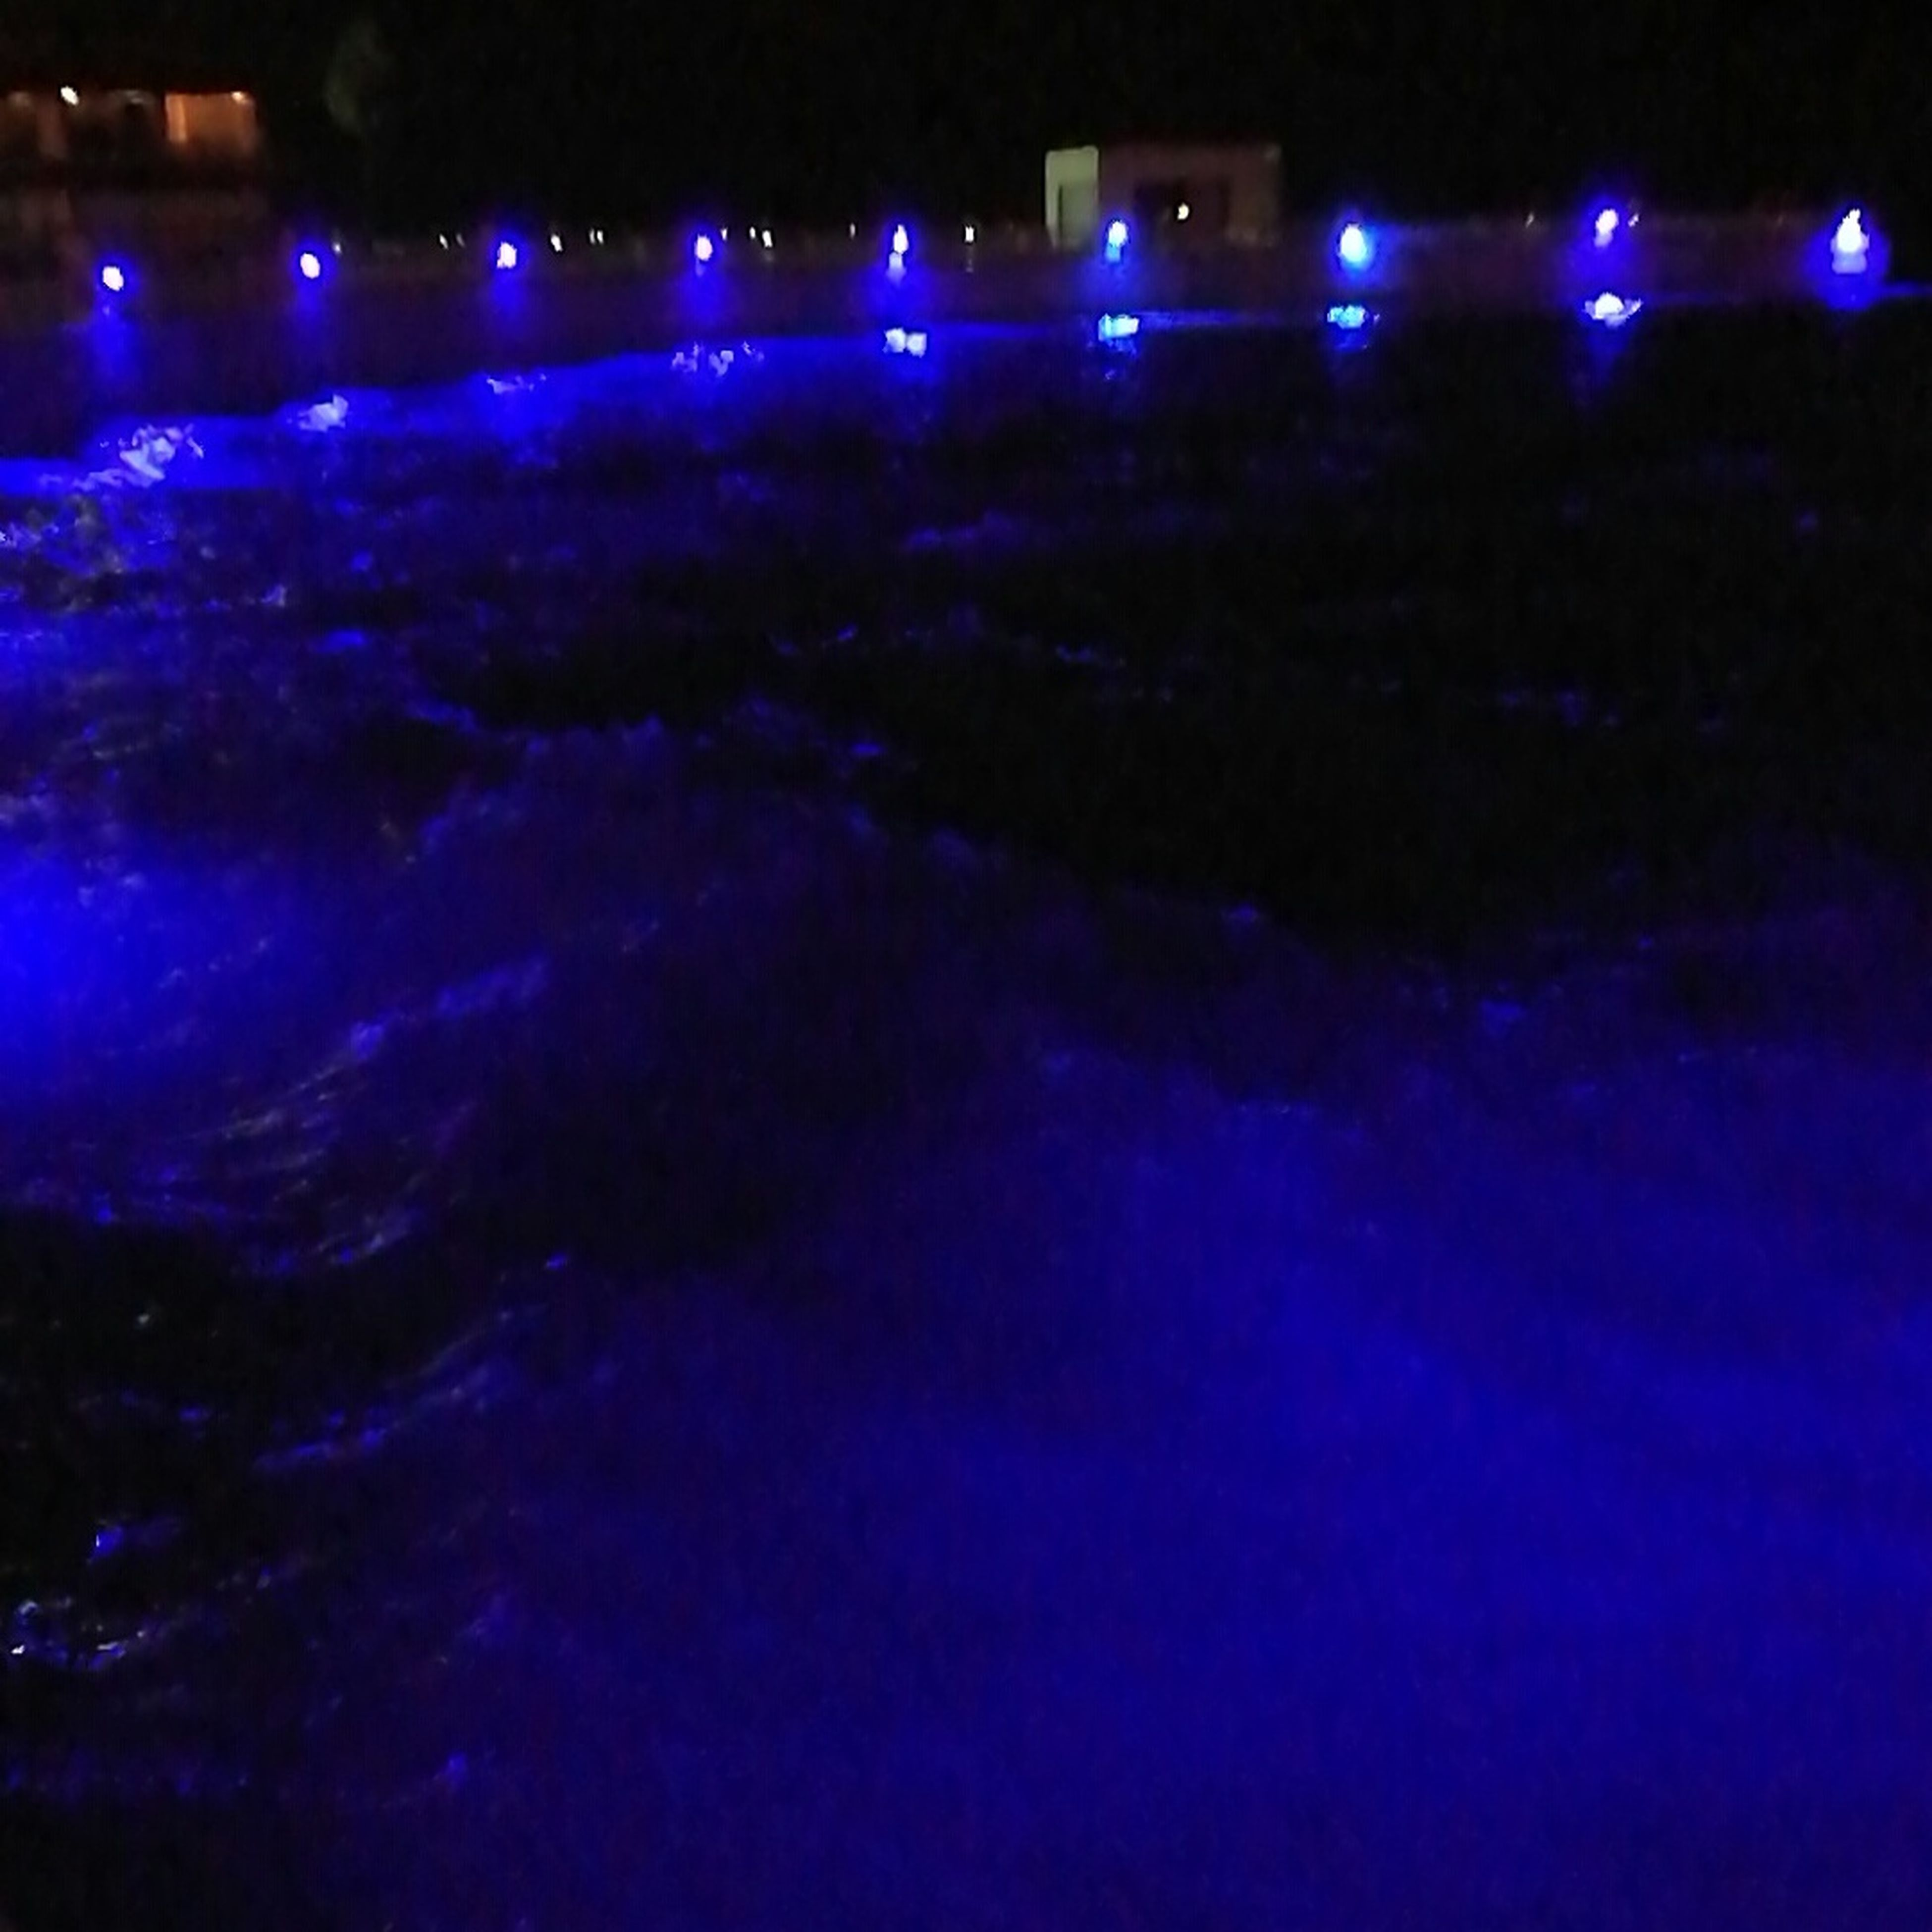 blue, night, illuminated, lighting equipment, arts culture and entertainment, no people, outdoors